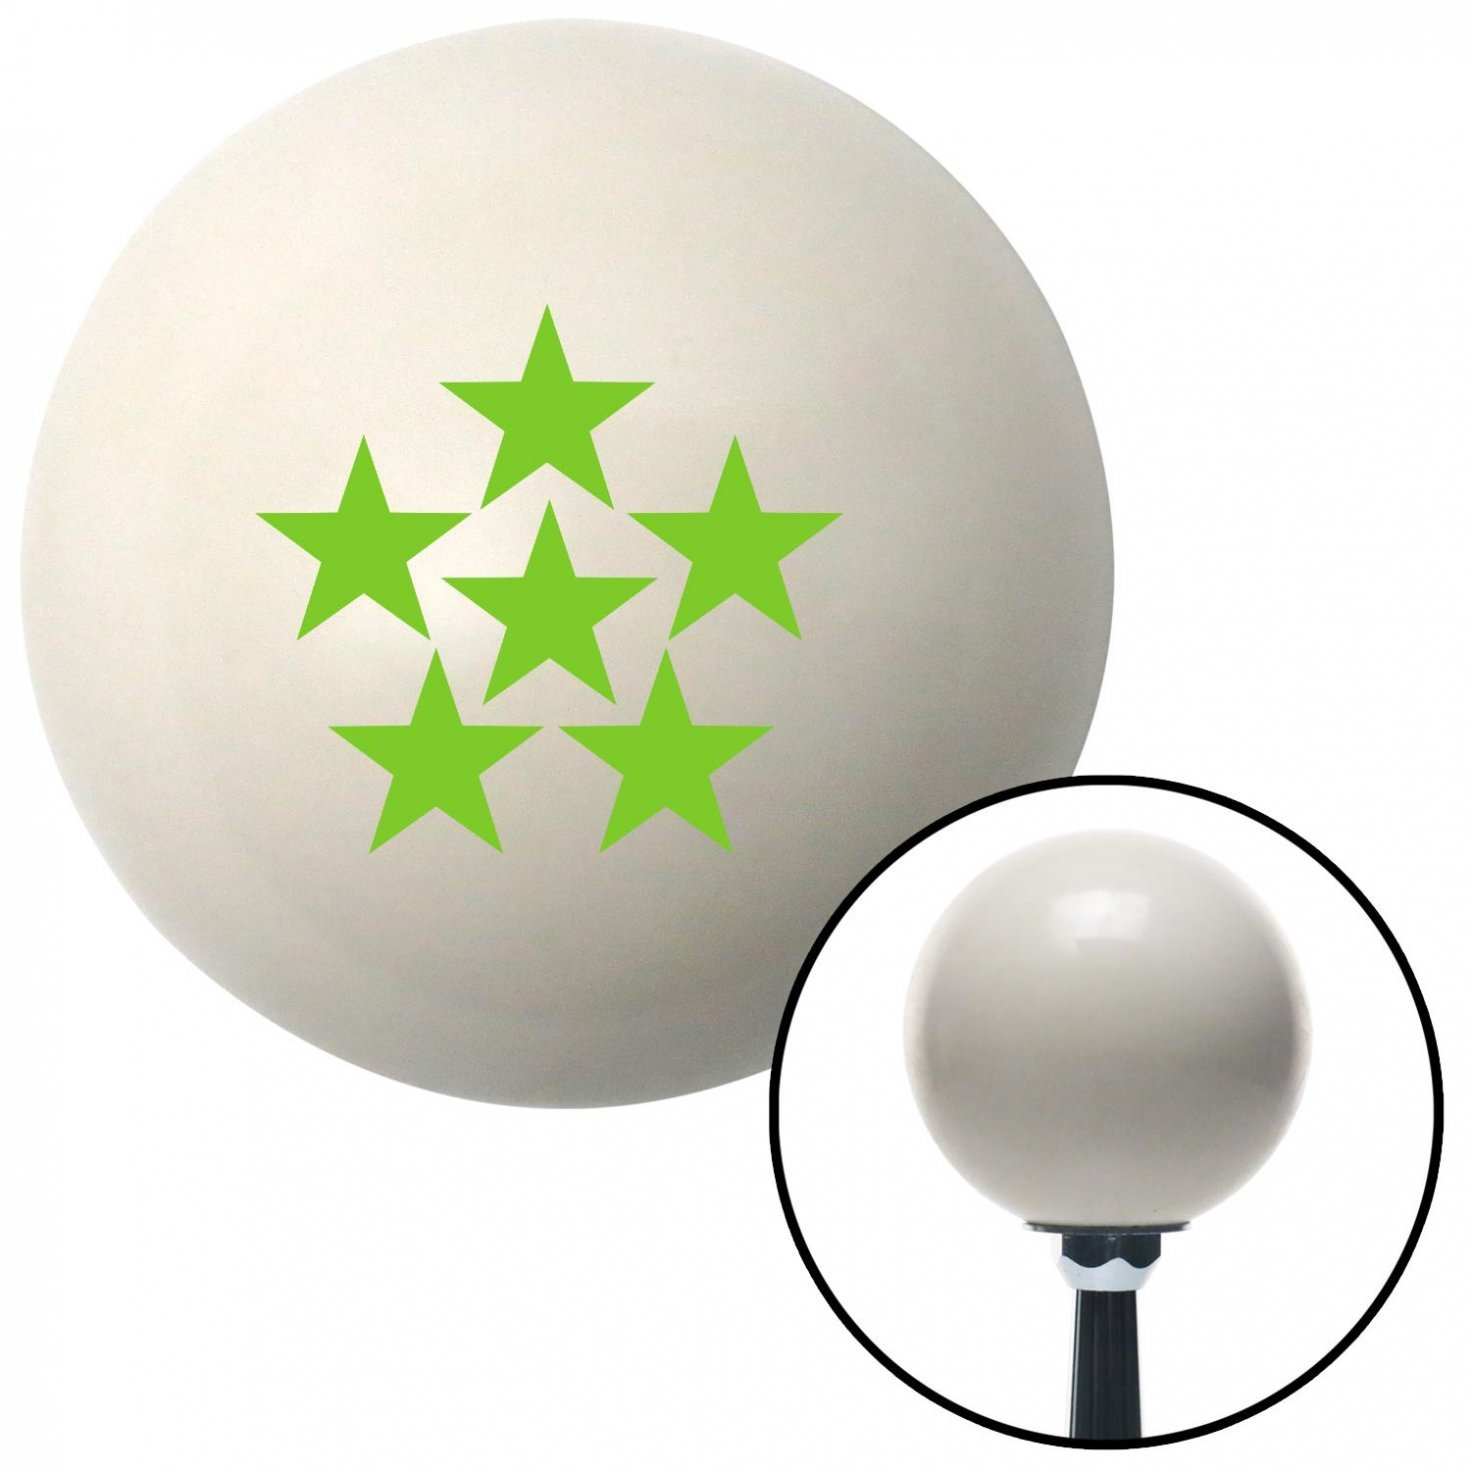 Green 6 Star Formation American Shifter 41035 Ivory Shift Knob with 16mm x 1.5 Insert